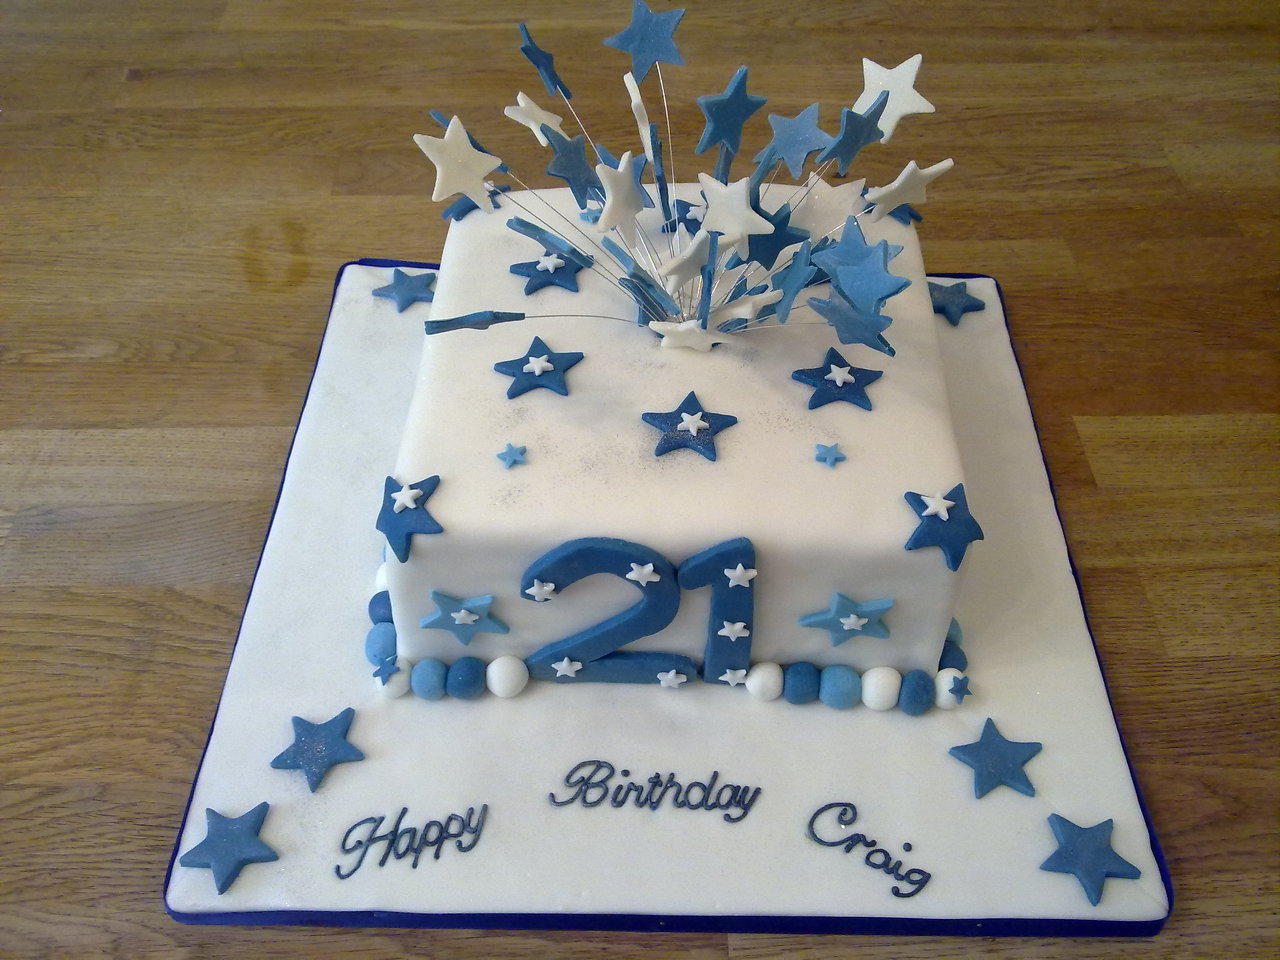 21st birthday cakes decoration ideas little birthday cakes for 21st birthday decoration ideas